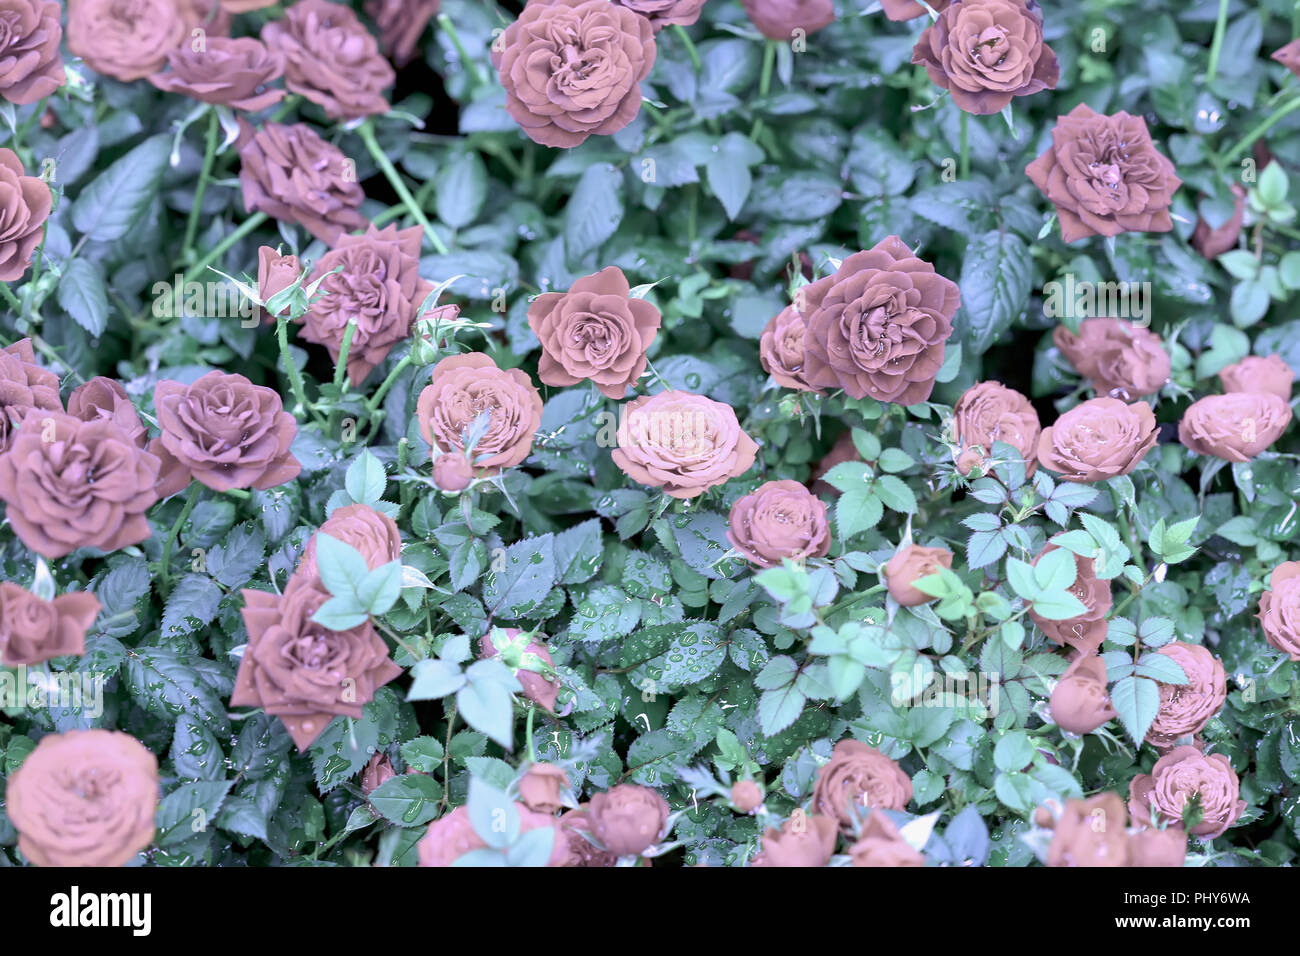 Natural Pink Roses Romantic Flowers Beautiful Seasonal Floral